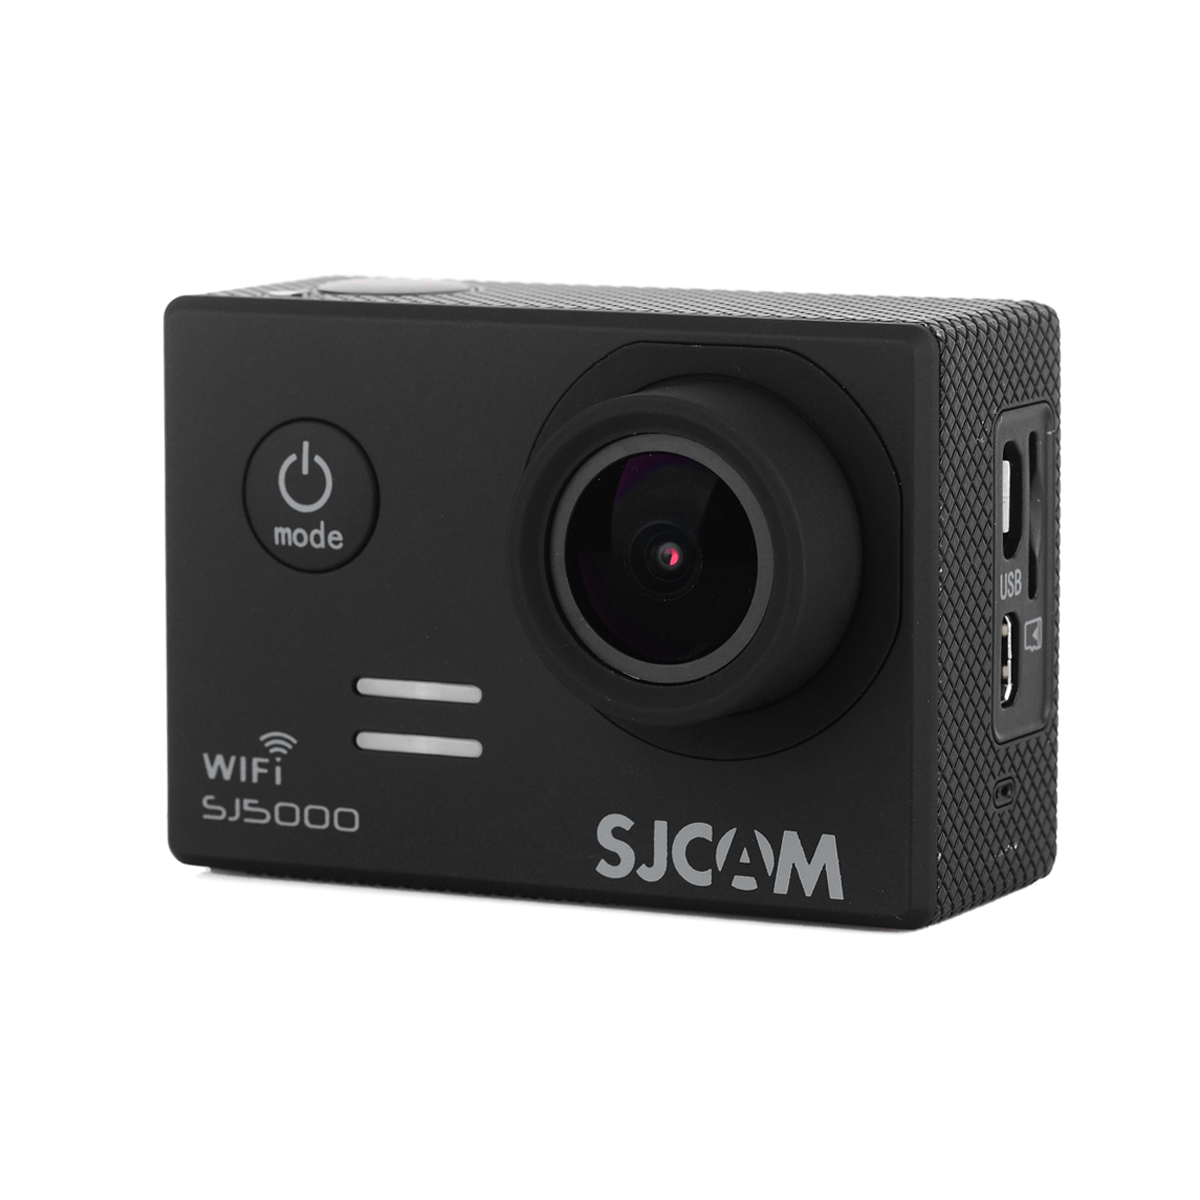 Original SJCAM SJ5000 WiFi Action HD Camera 14MP Novatek 96655 1080P Waterproof Black